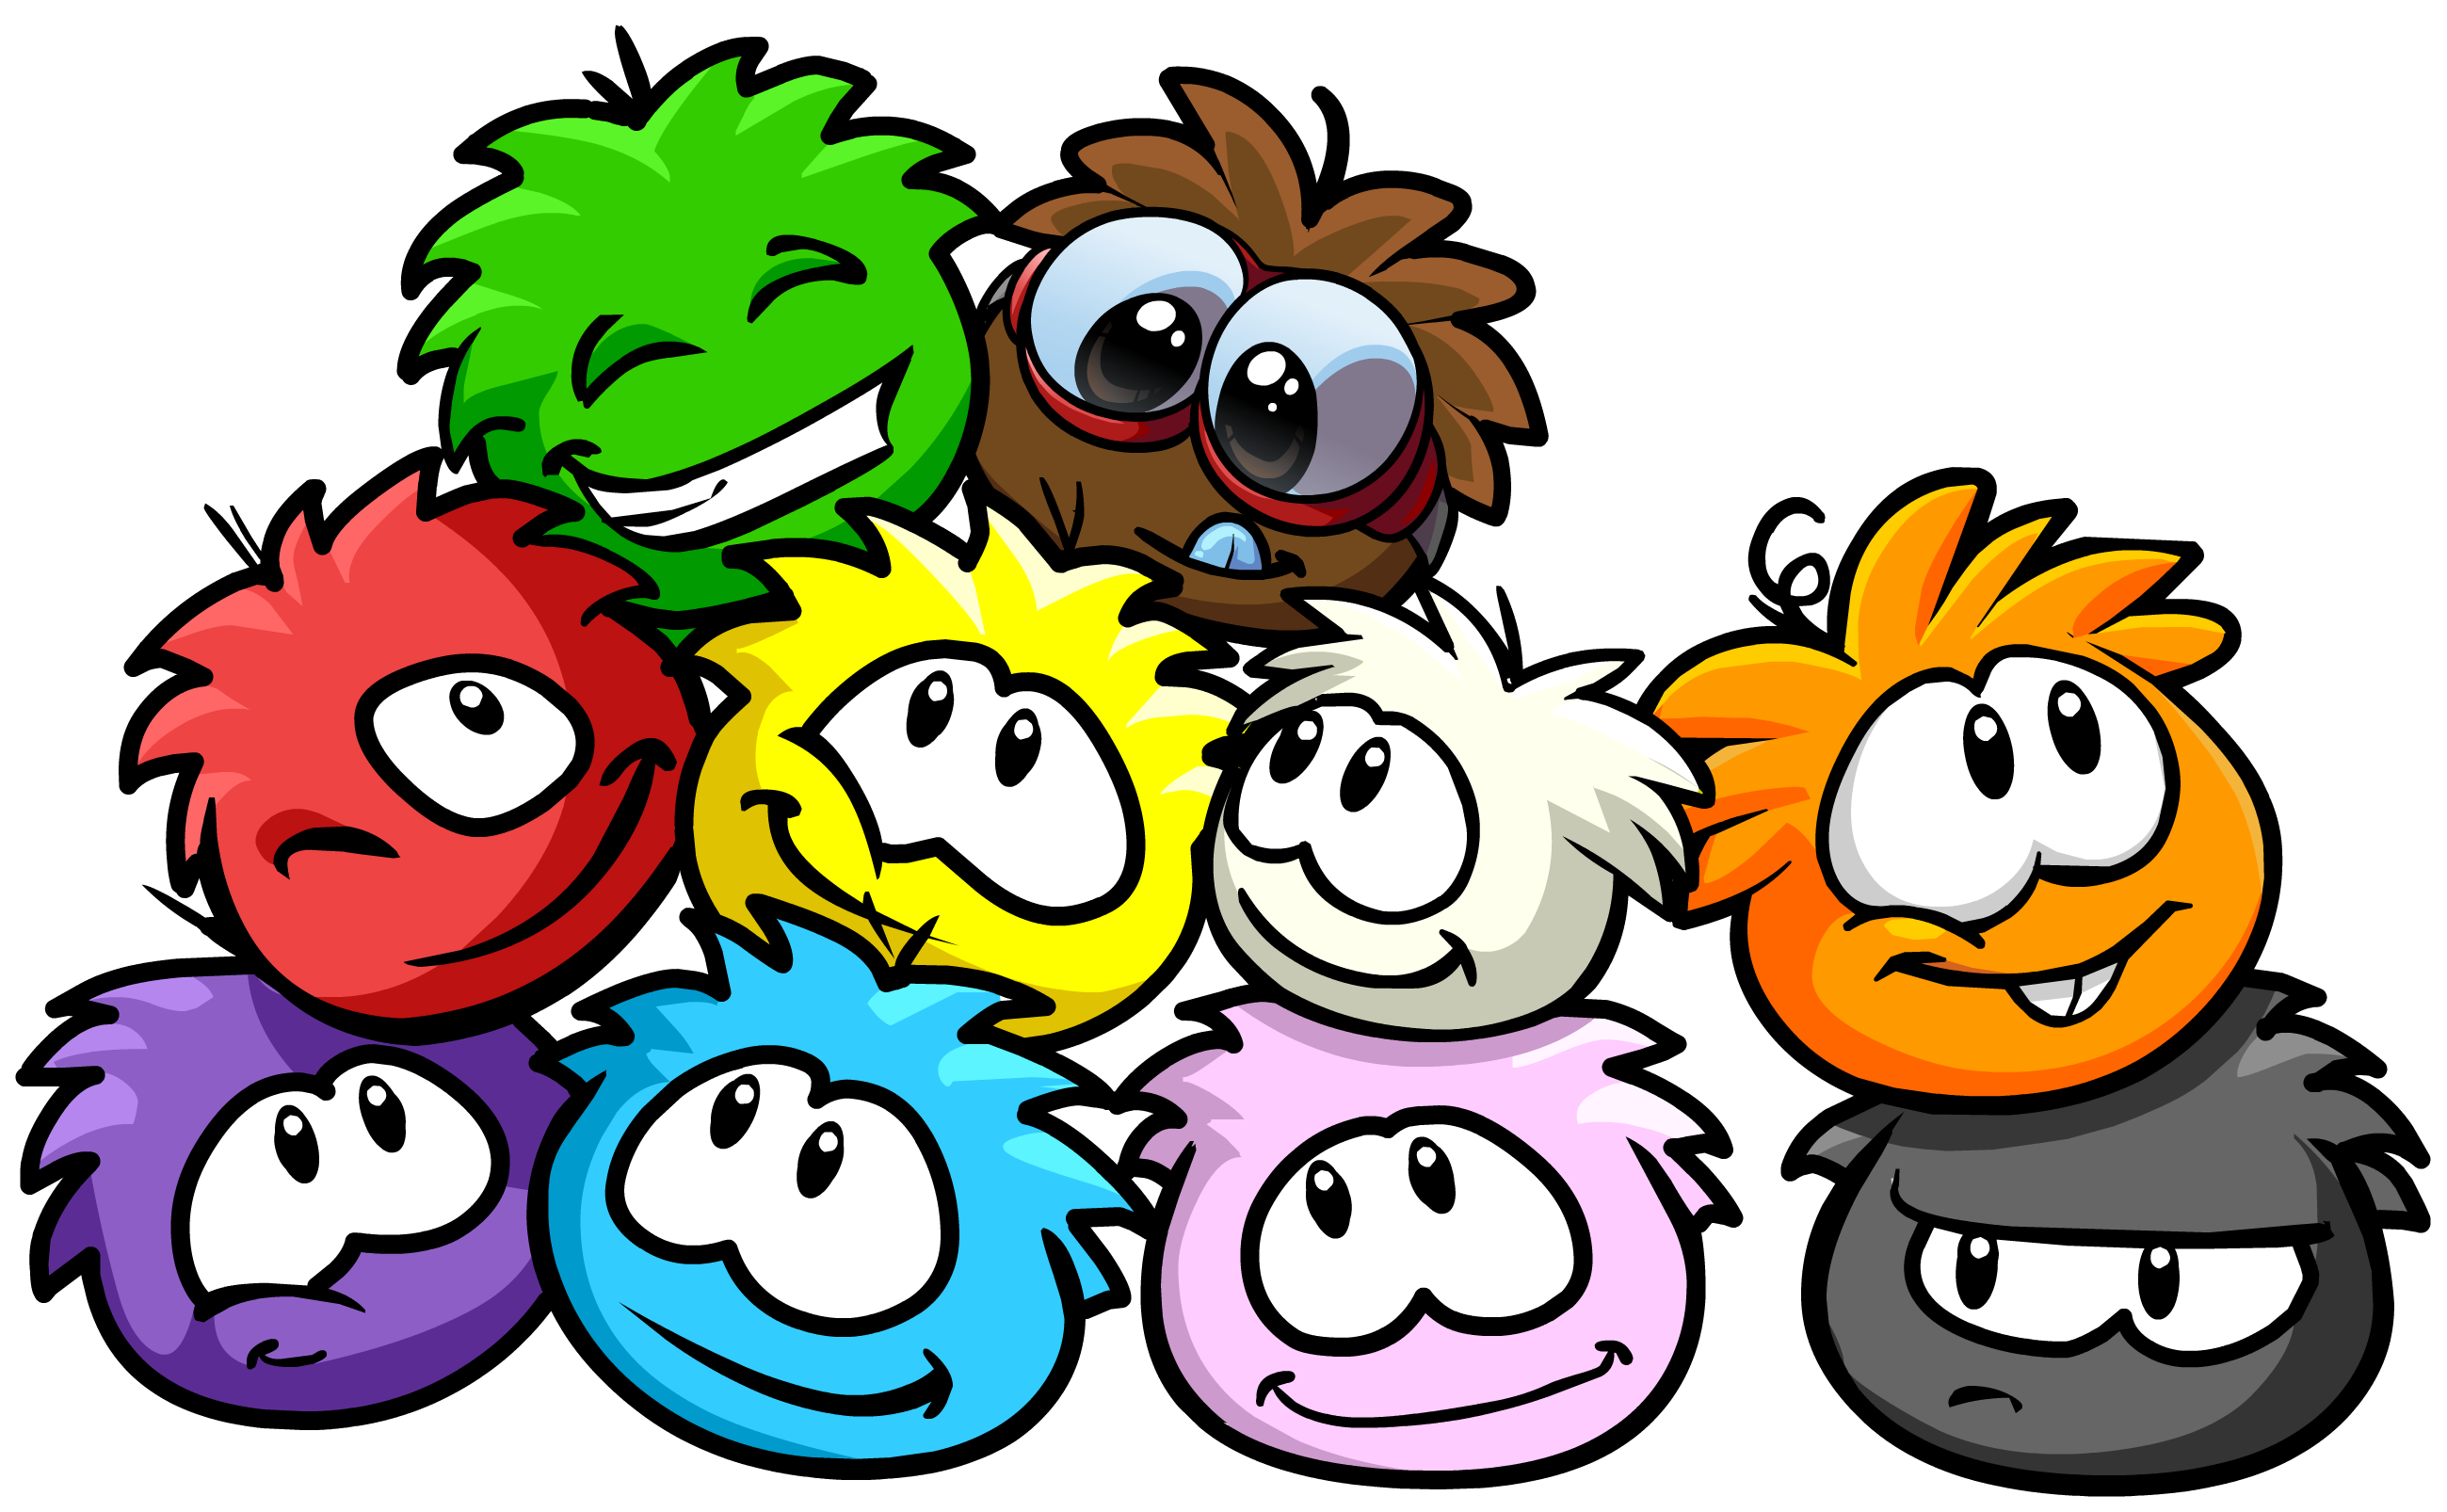 A group of Puffles from the online game Club Penguin